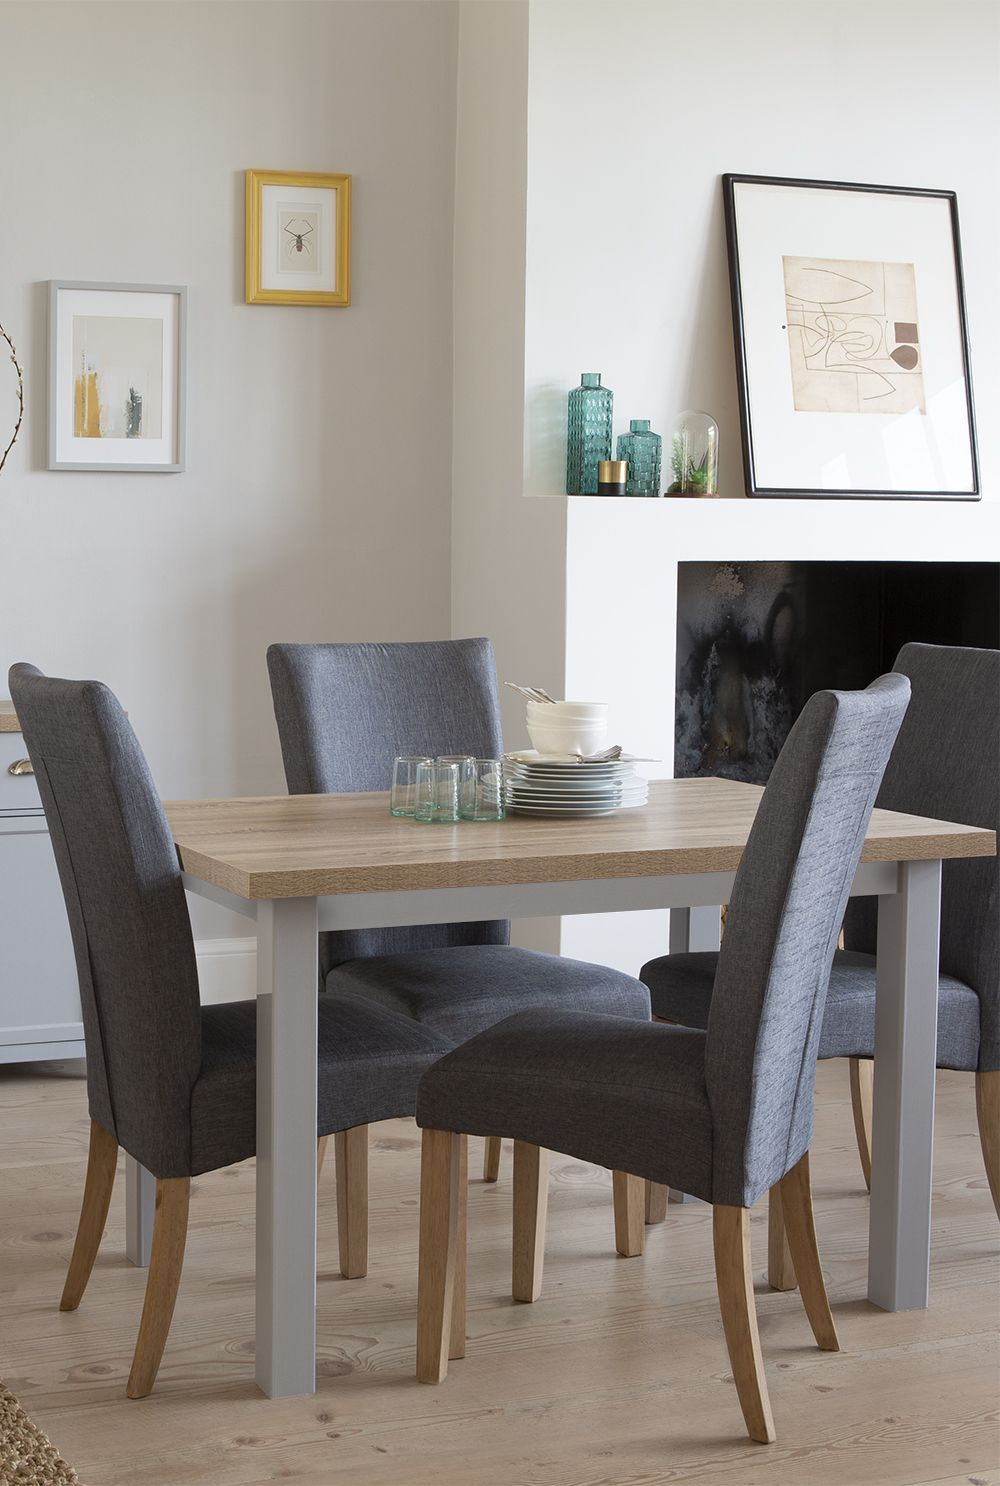 Table à Manger Marisa Dine In Style On Our Harlow 4 Seater Dining Set In Grey Which Is